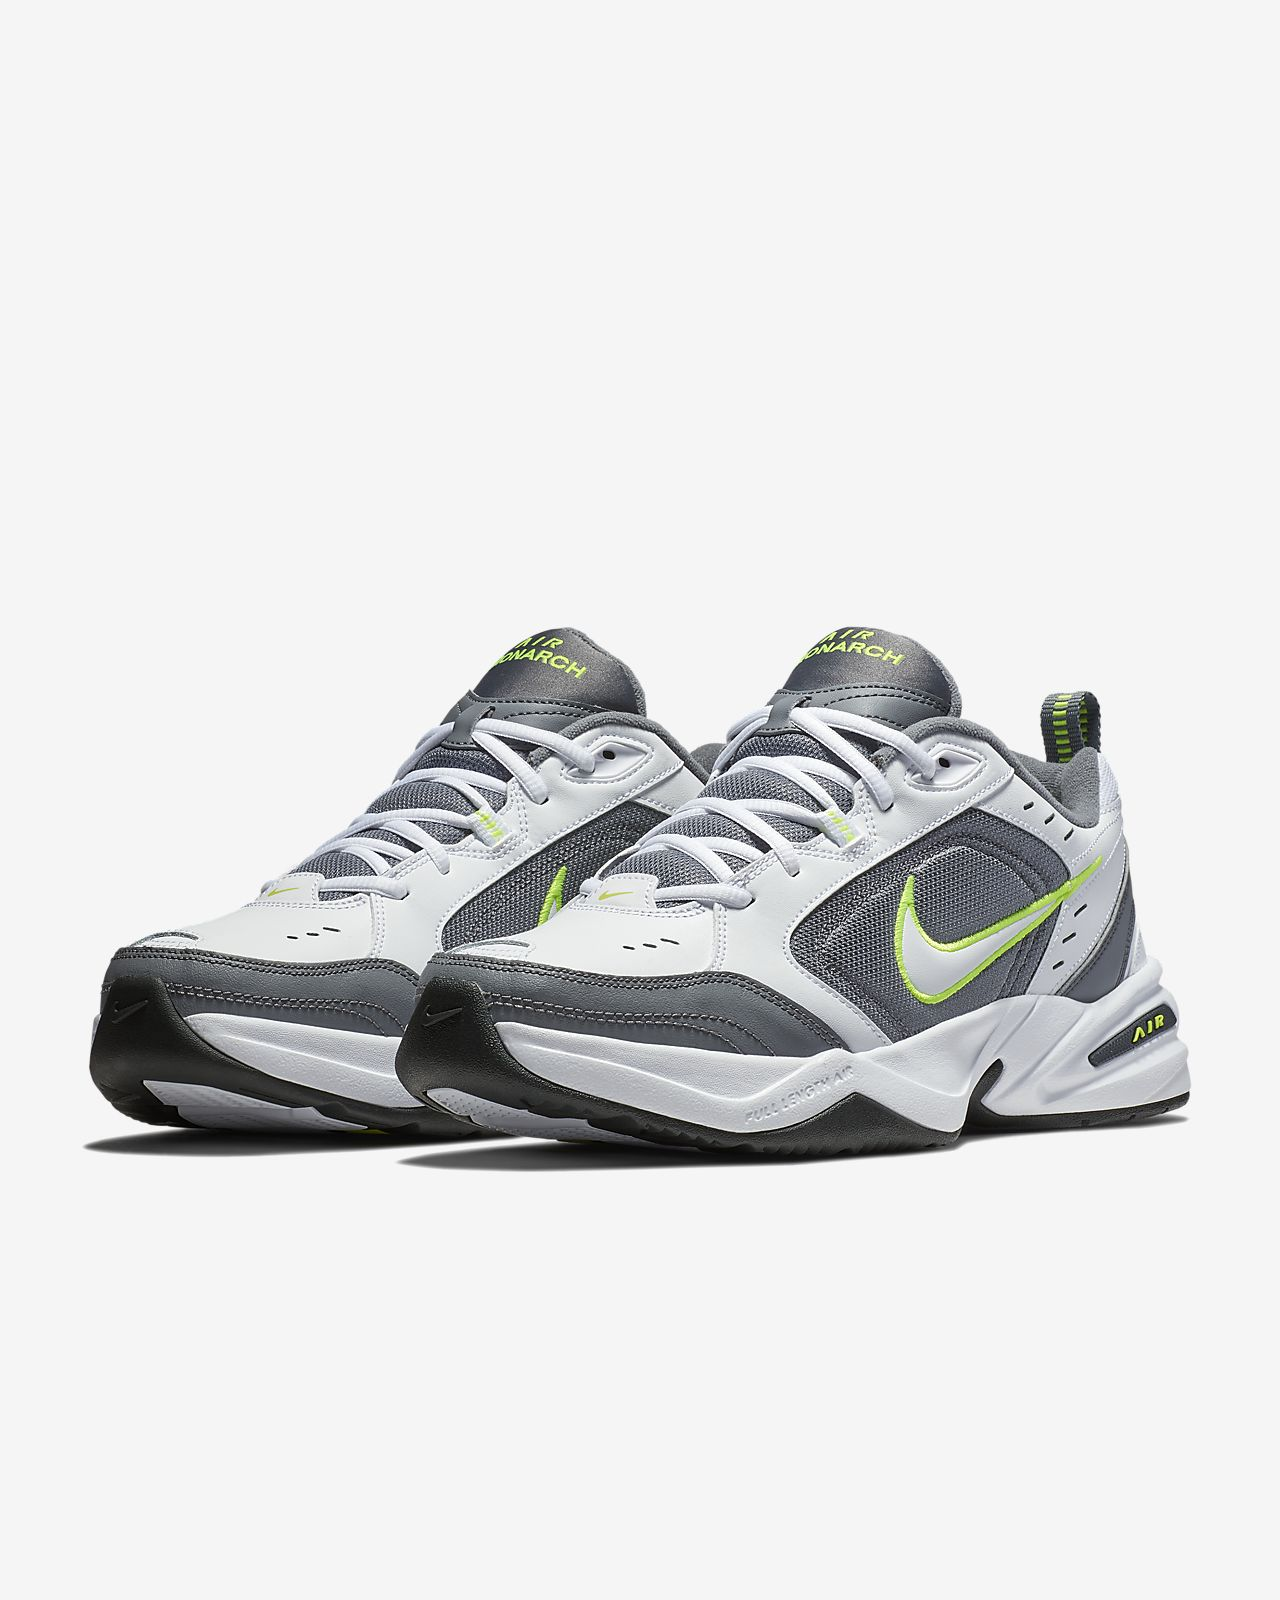 free shipping dd568 bd834 ... Nike Air Monarch IV Lifestyle Gym Shoe